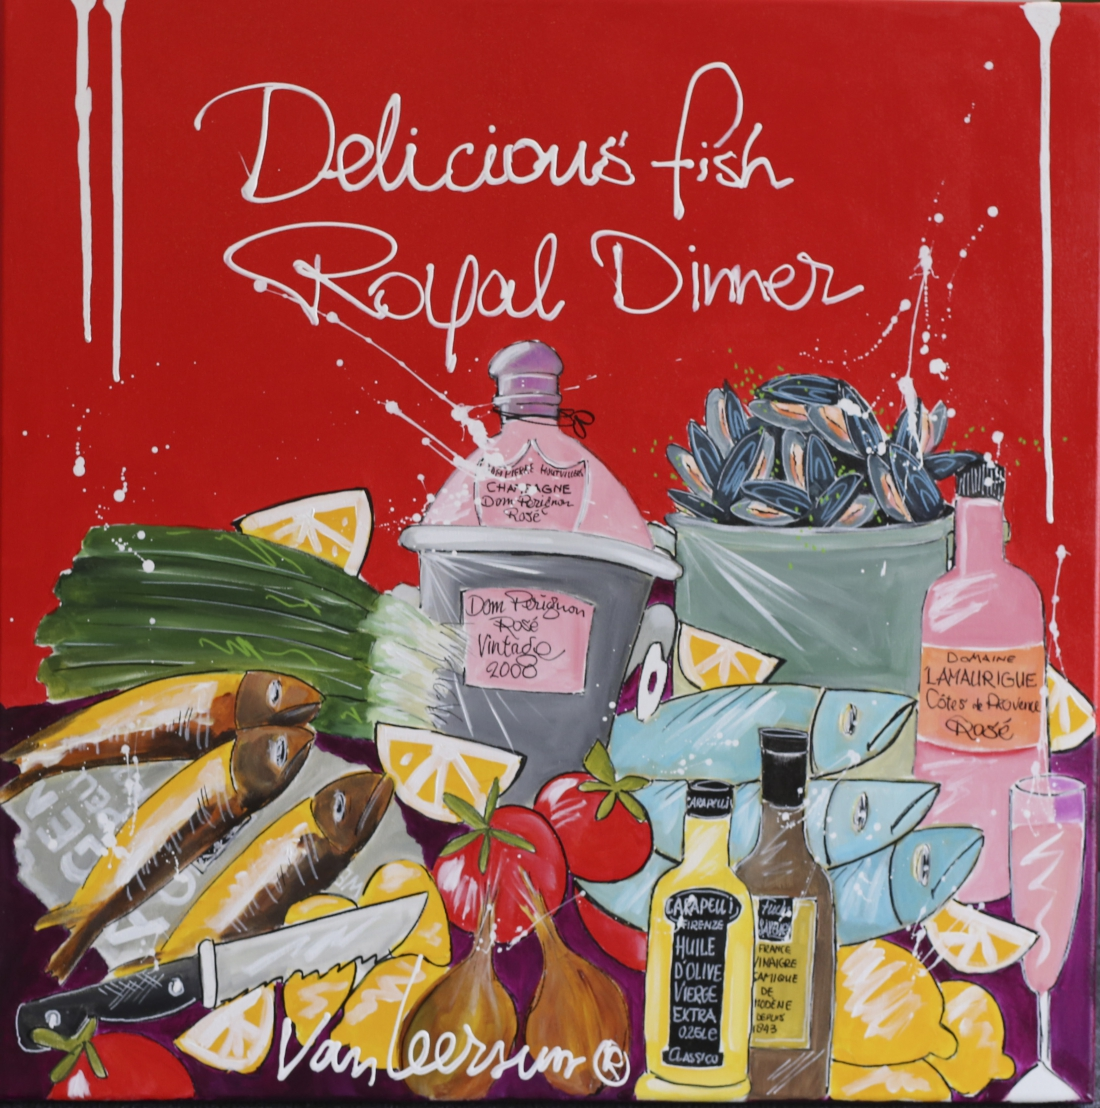 Delicious Fish Royal Diner 80x80